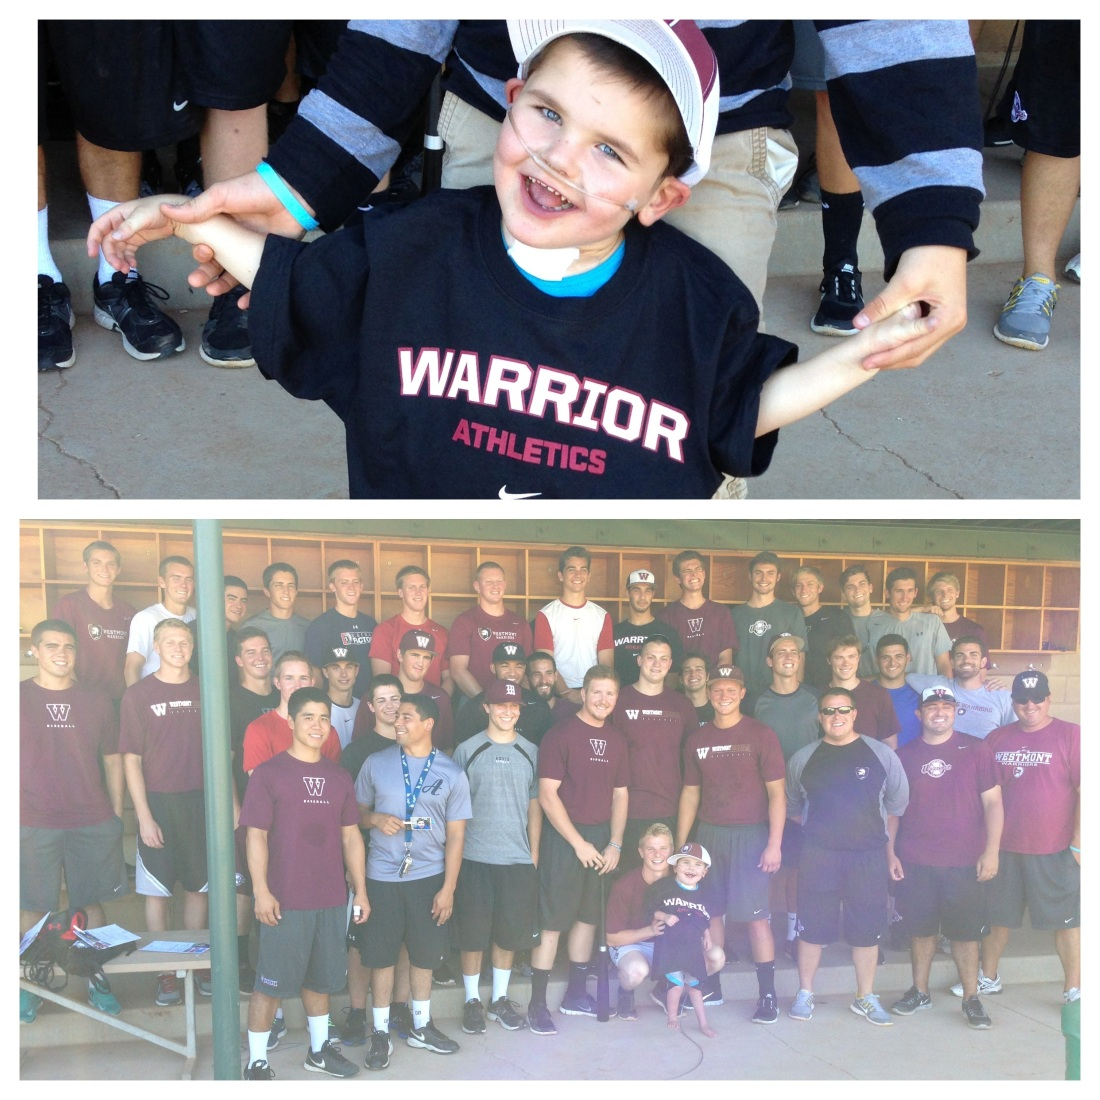 Rudy and the Westmont Warriors!